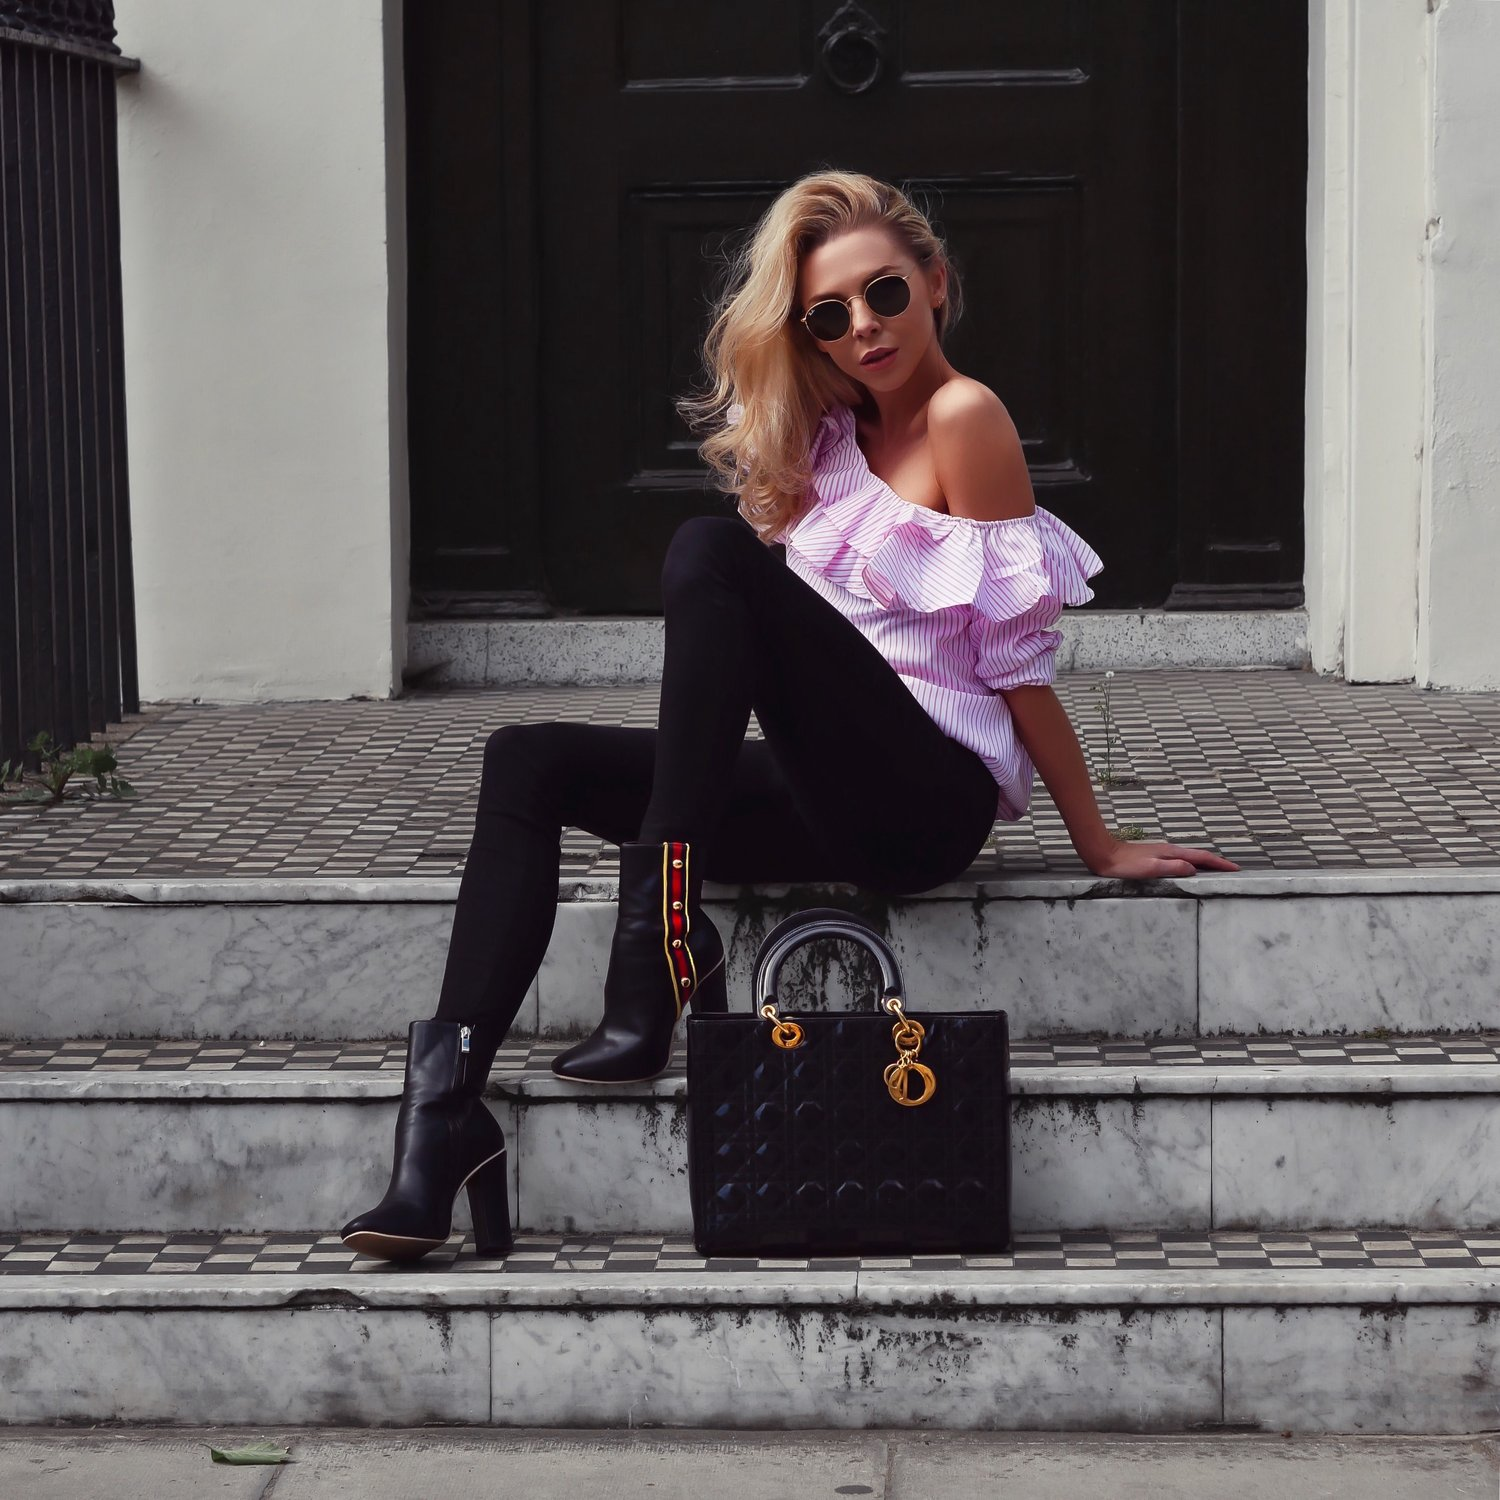 haul, affordable fashion, streetstyle, inspiration, what to wear, fashion, lookbook, style, fashion blogger, laura blair, youtuber, london fashion girl, dior, lady dior handbag, luxury bag, designer bag